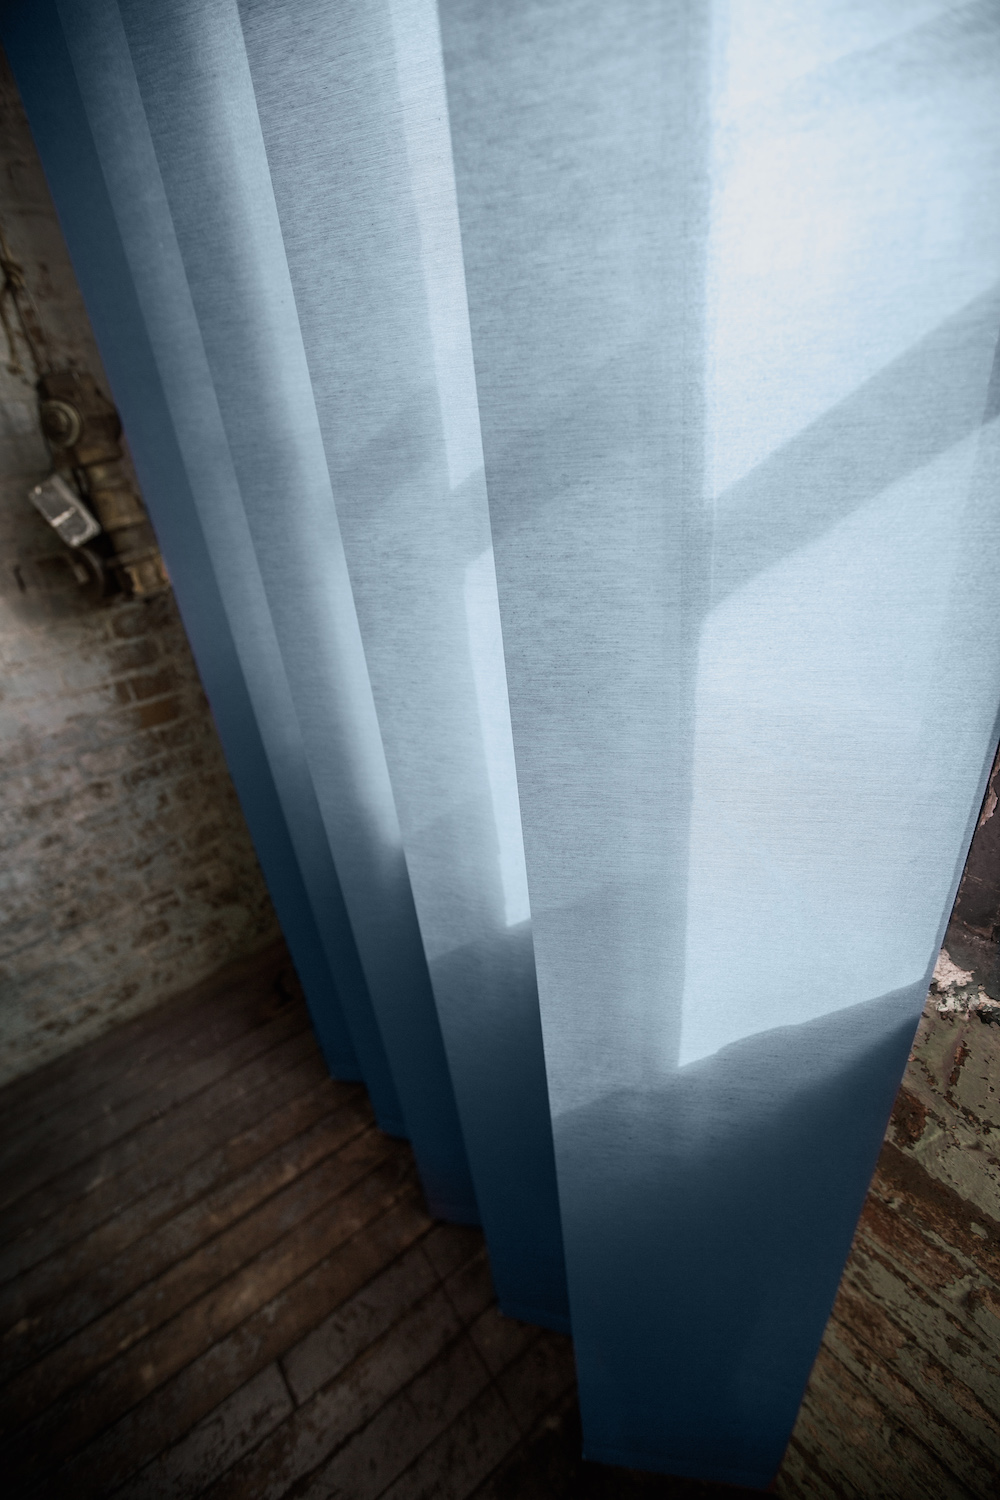 Install XL vertical blinds in your summer bedroom to channel the open ocean.